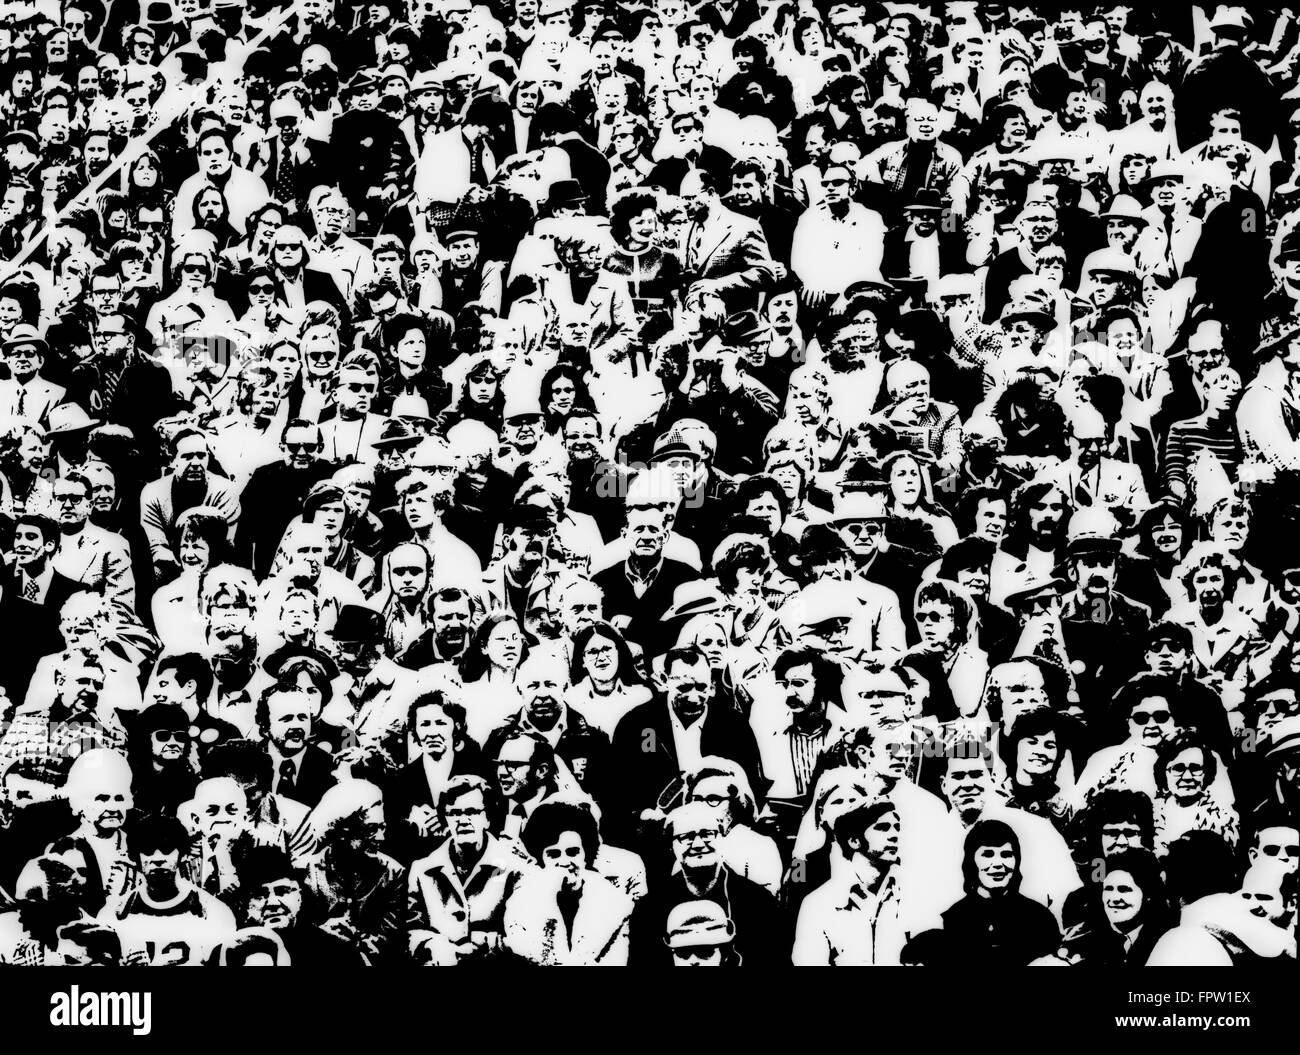 1960s POSTERIZATION OF LARGE CROWD IN SPORTING EVENT BLEACHERS